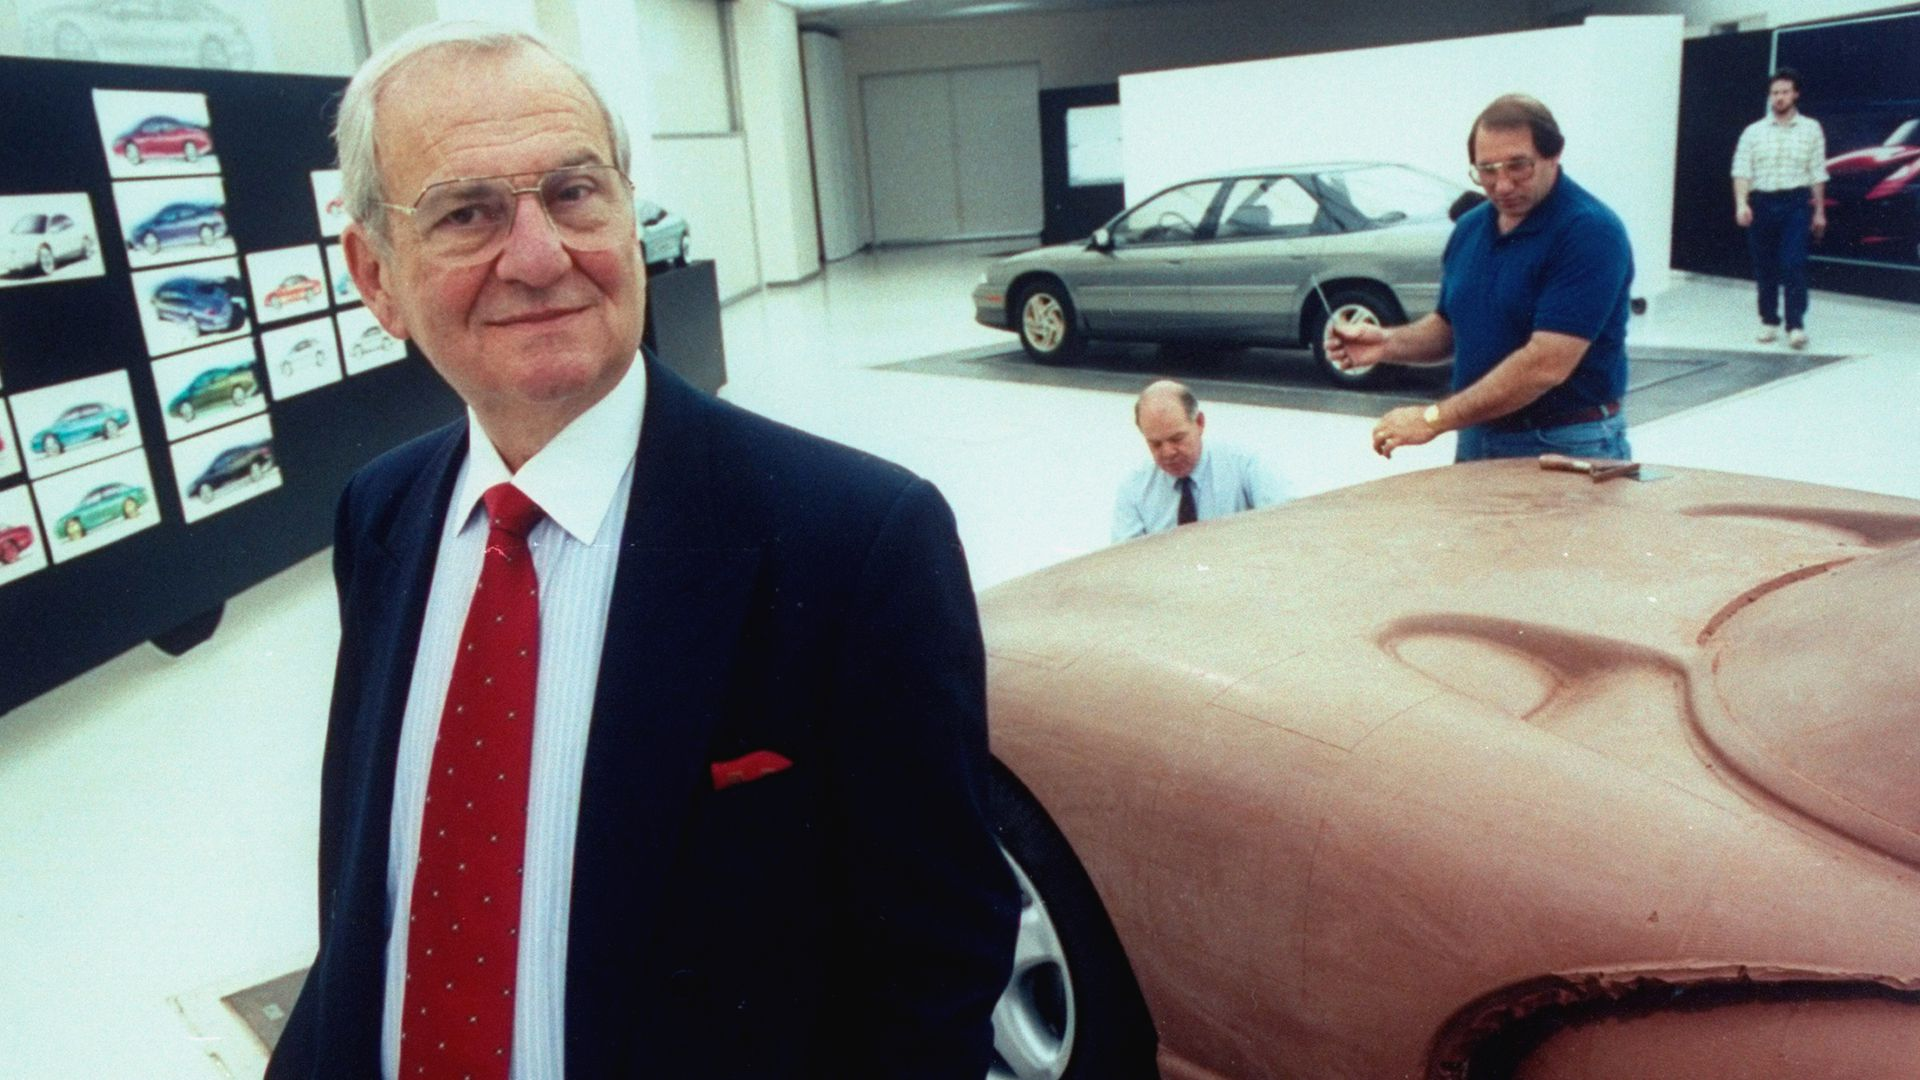 Chrysler Corp. Chmn. Lee Iacocca posing in front of full-sized clay model of the proposed Viper sports car being worked on by staff technicians.